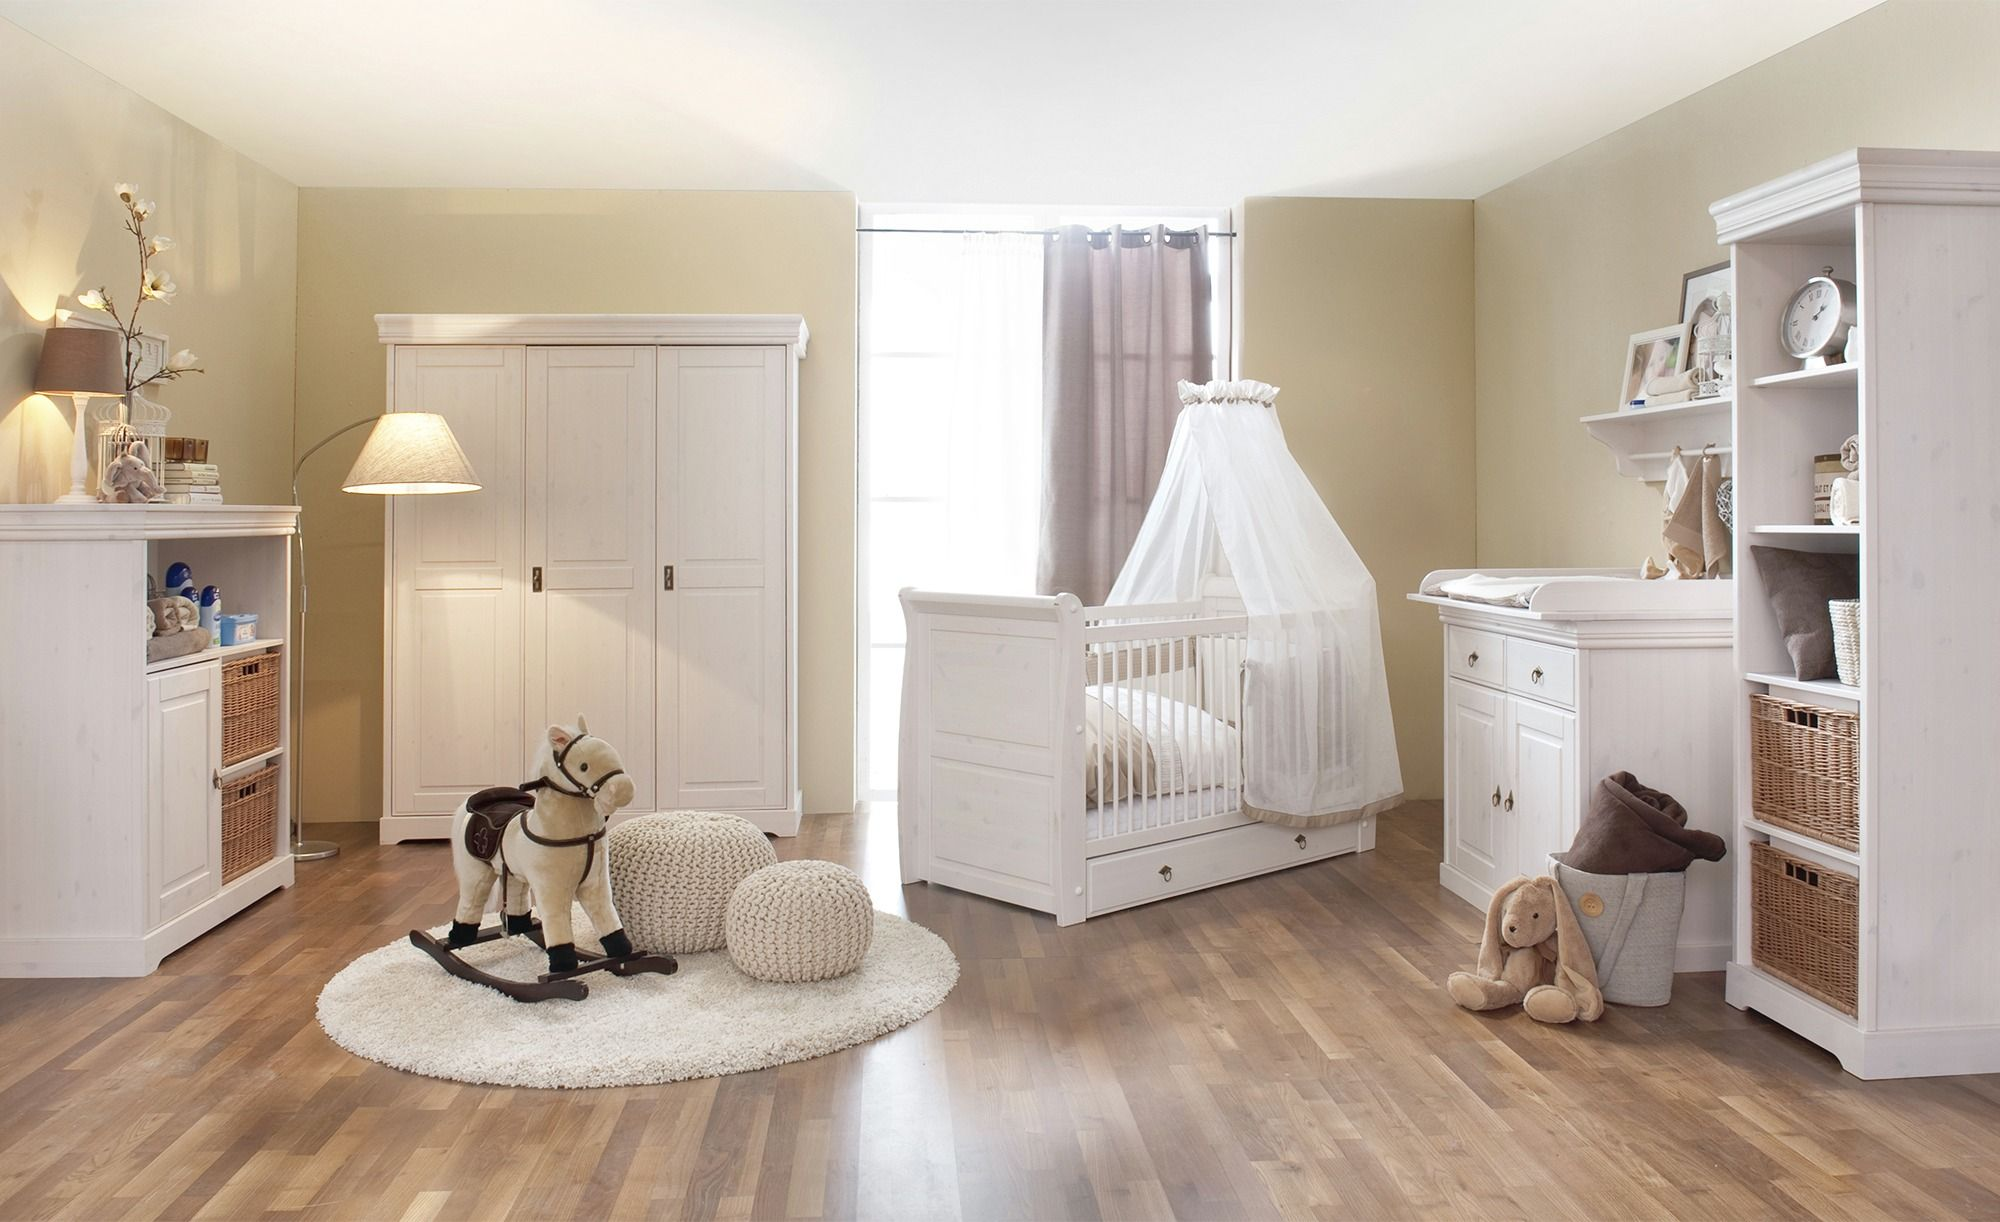 Pin By Christabel Funk On Children Bedroom Ideas Pinterest